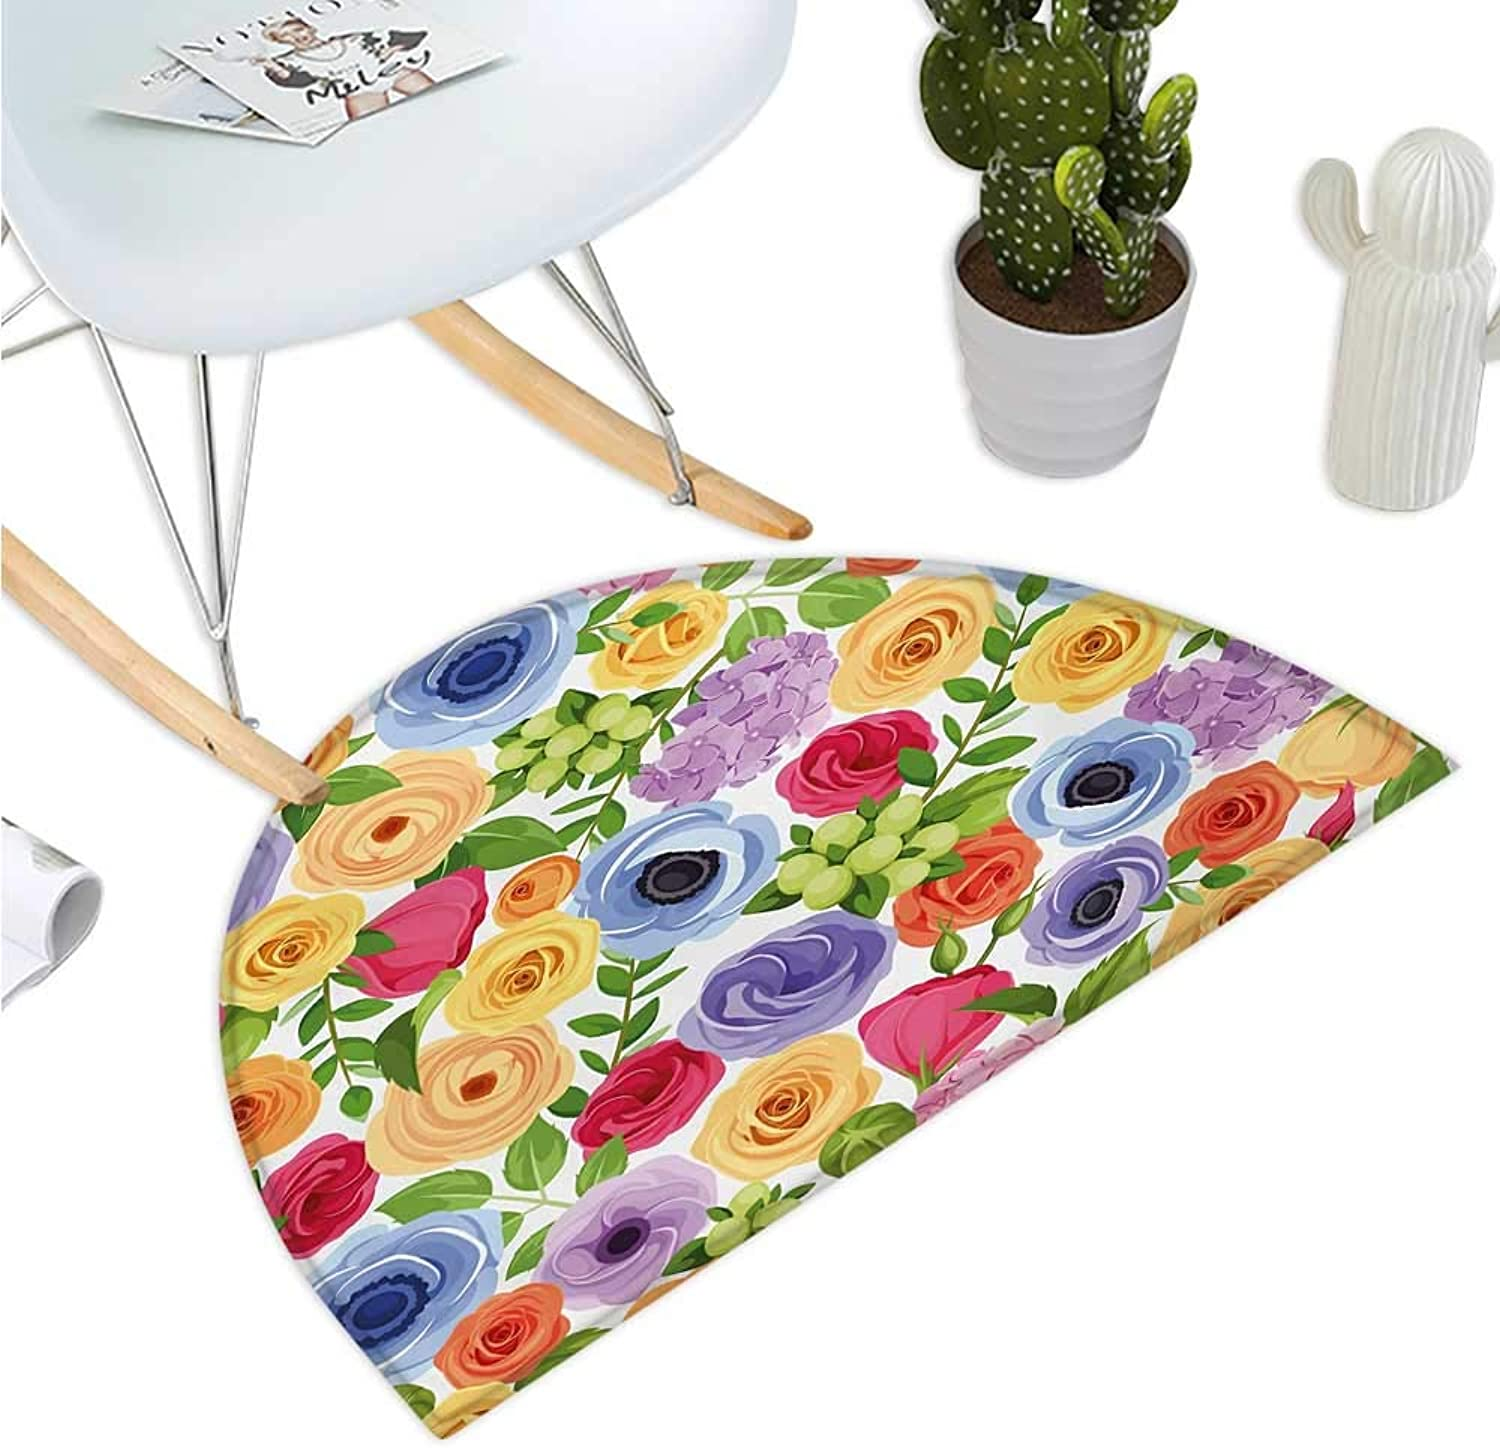 Anemone Flower Semicircular Cushion Ornate colorful Fresh Flowers of Summer Season Forest with Green Leaves Entry Door Mat H 47.2  xD 70.8  Multicolor